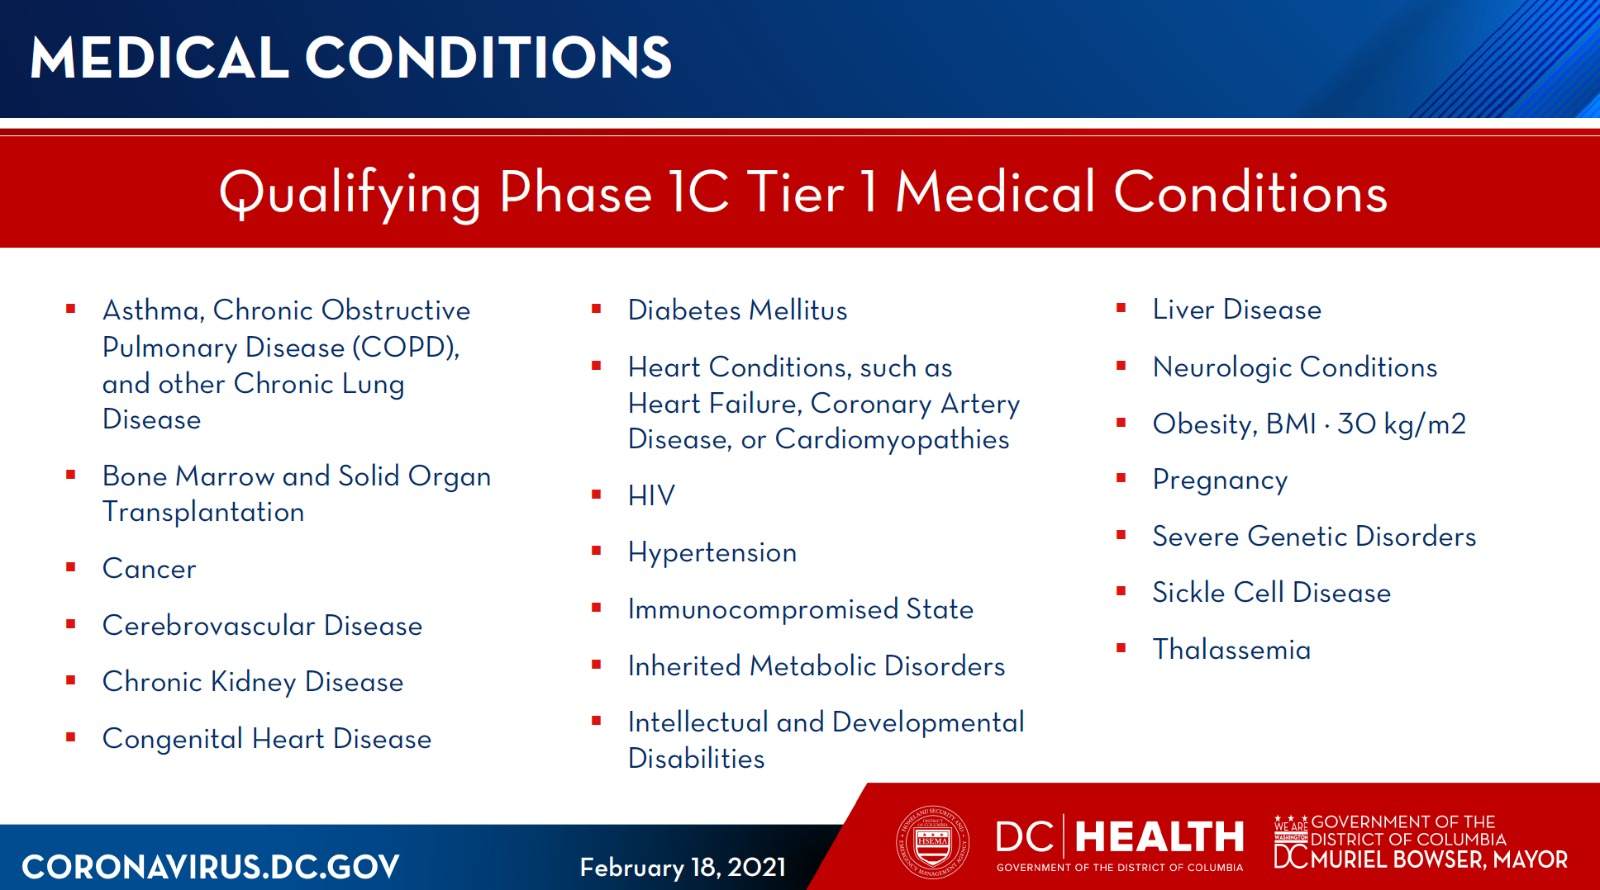 Medical Conditions List